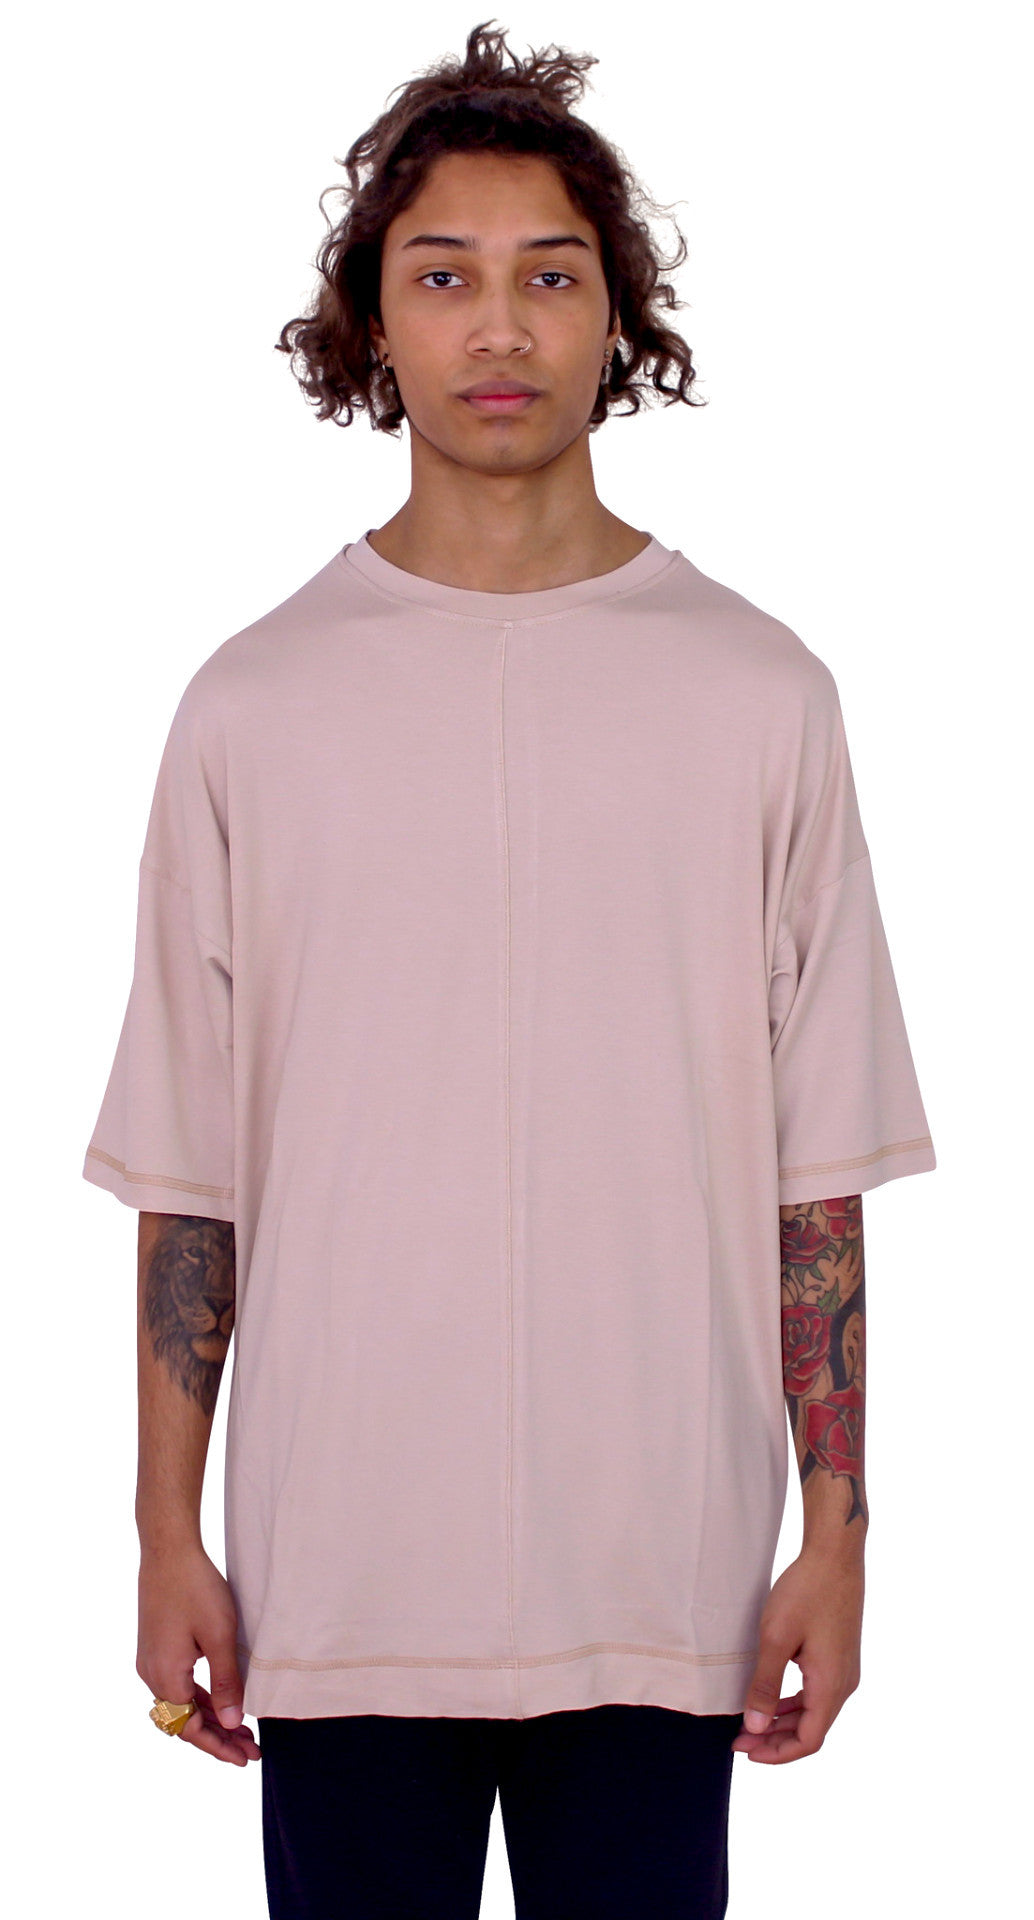 DROPPED SHOULDERS TEE - CREAM